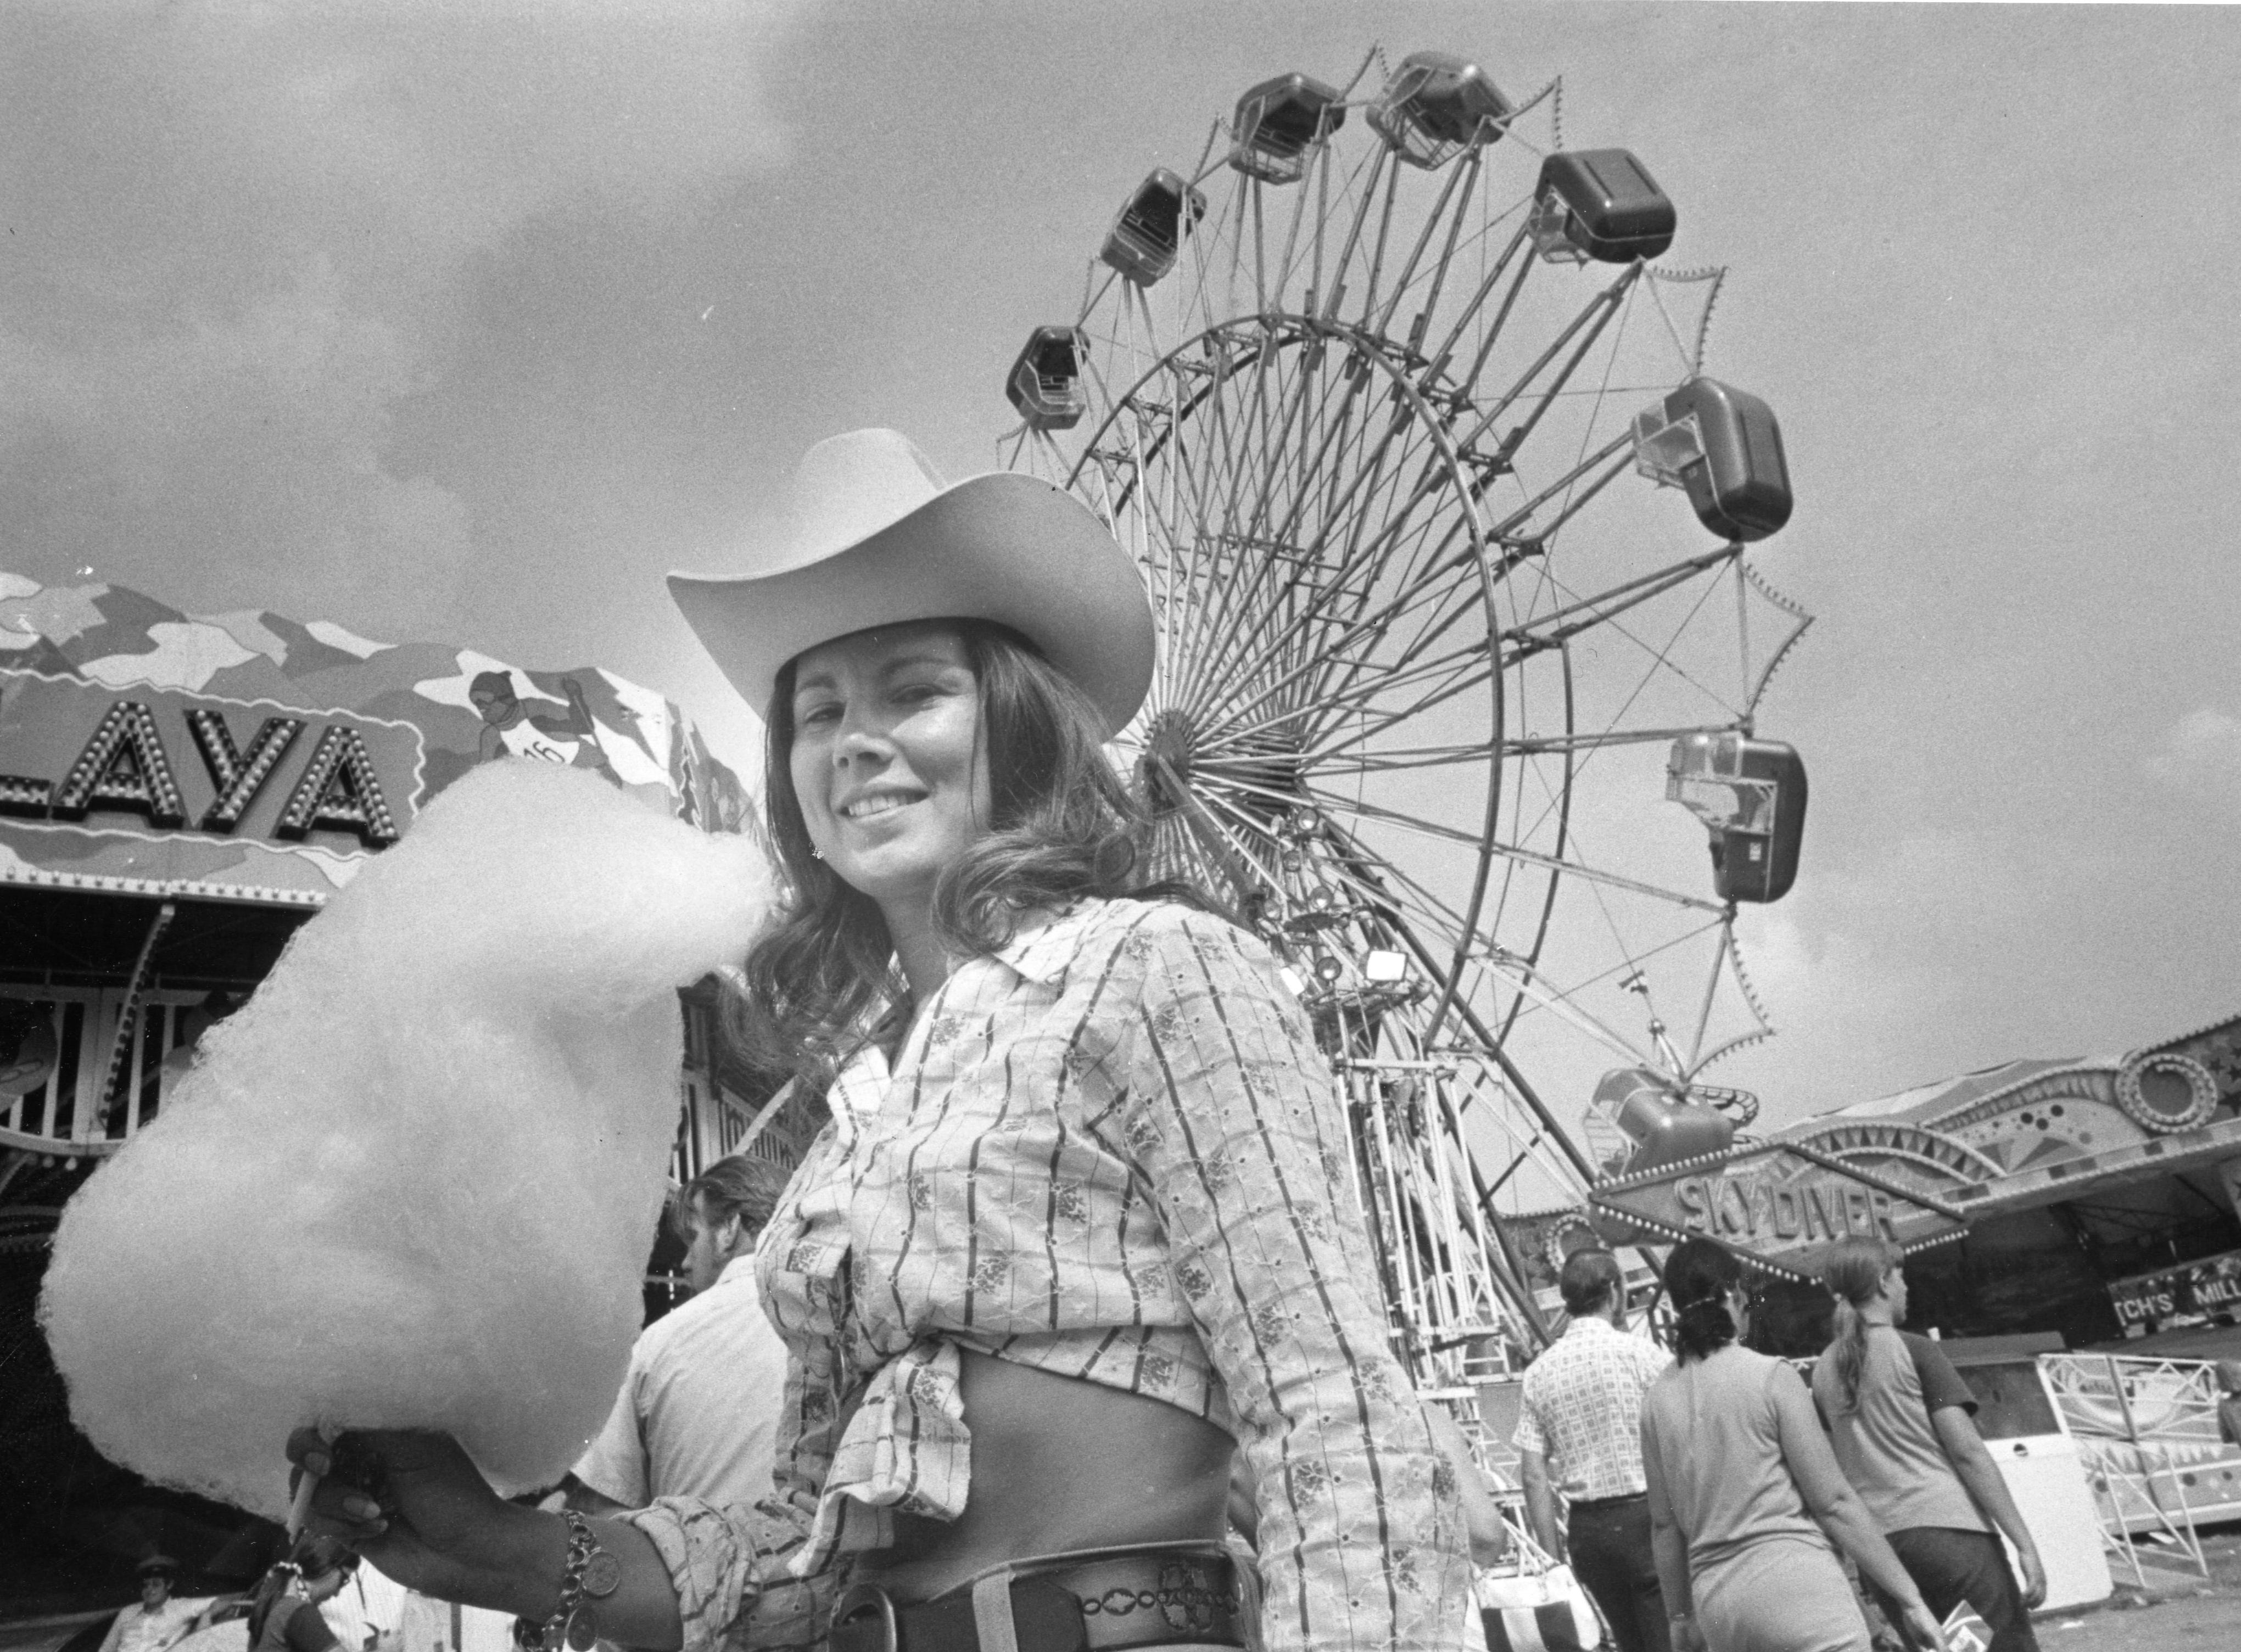 Diane Whitt holds her cotton candy at the Tennessee Valley Fair on September 9, 1973.